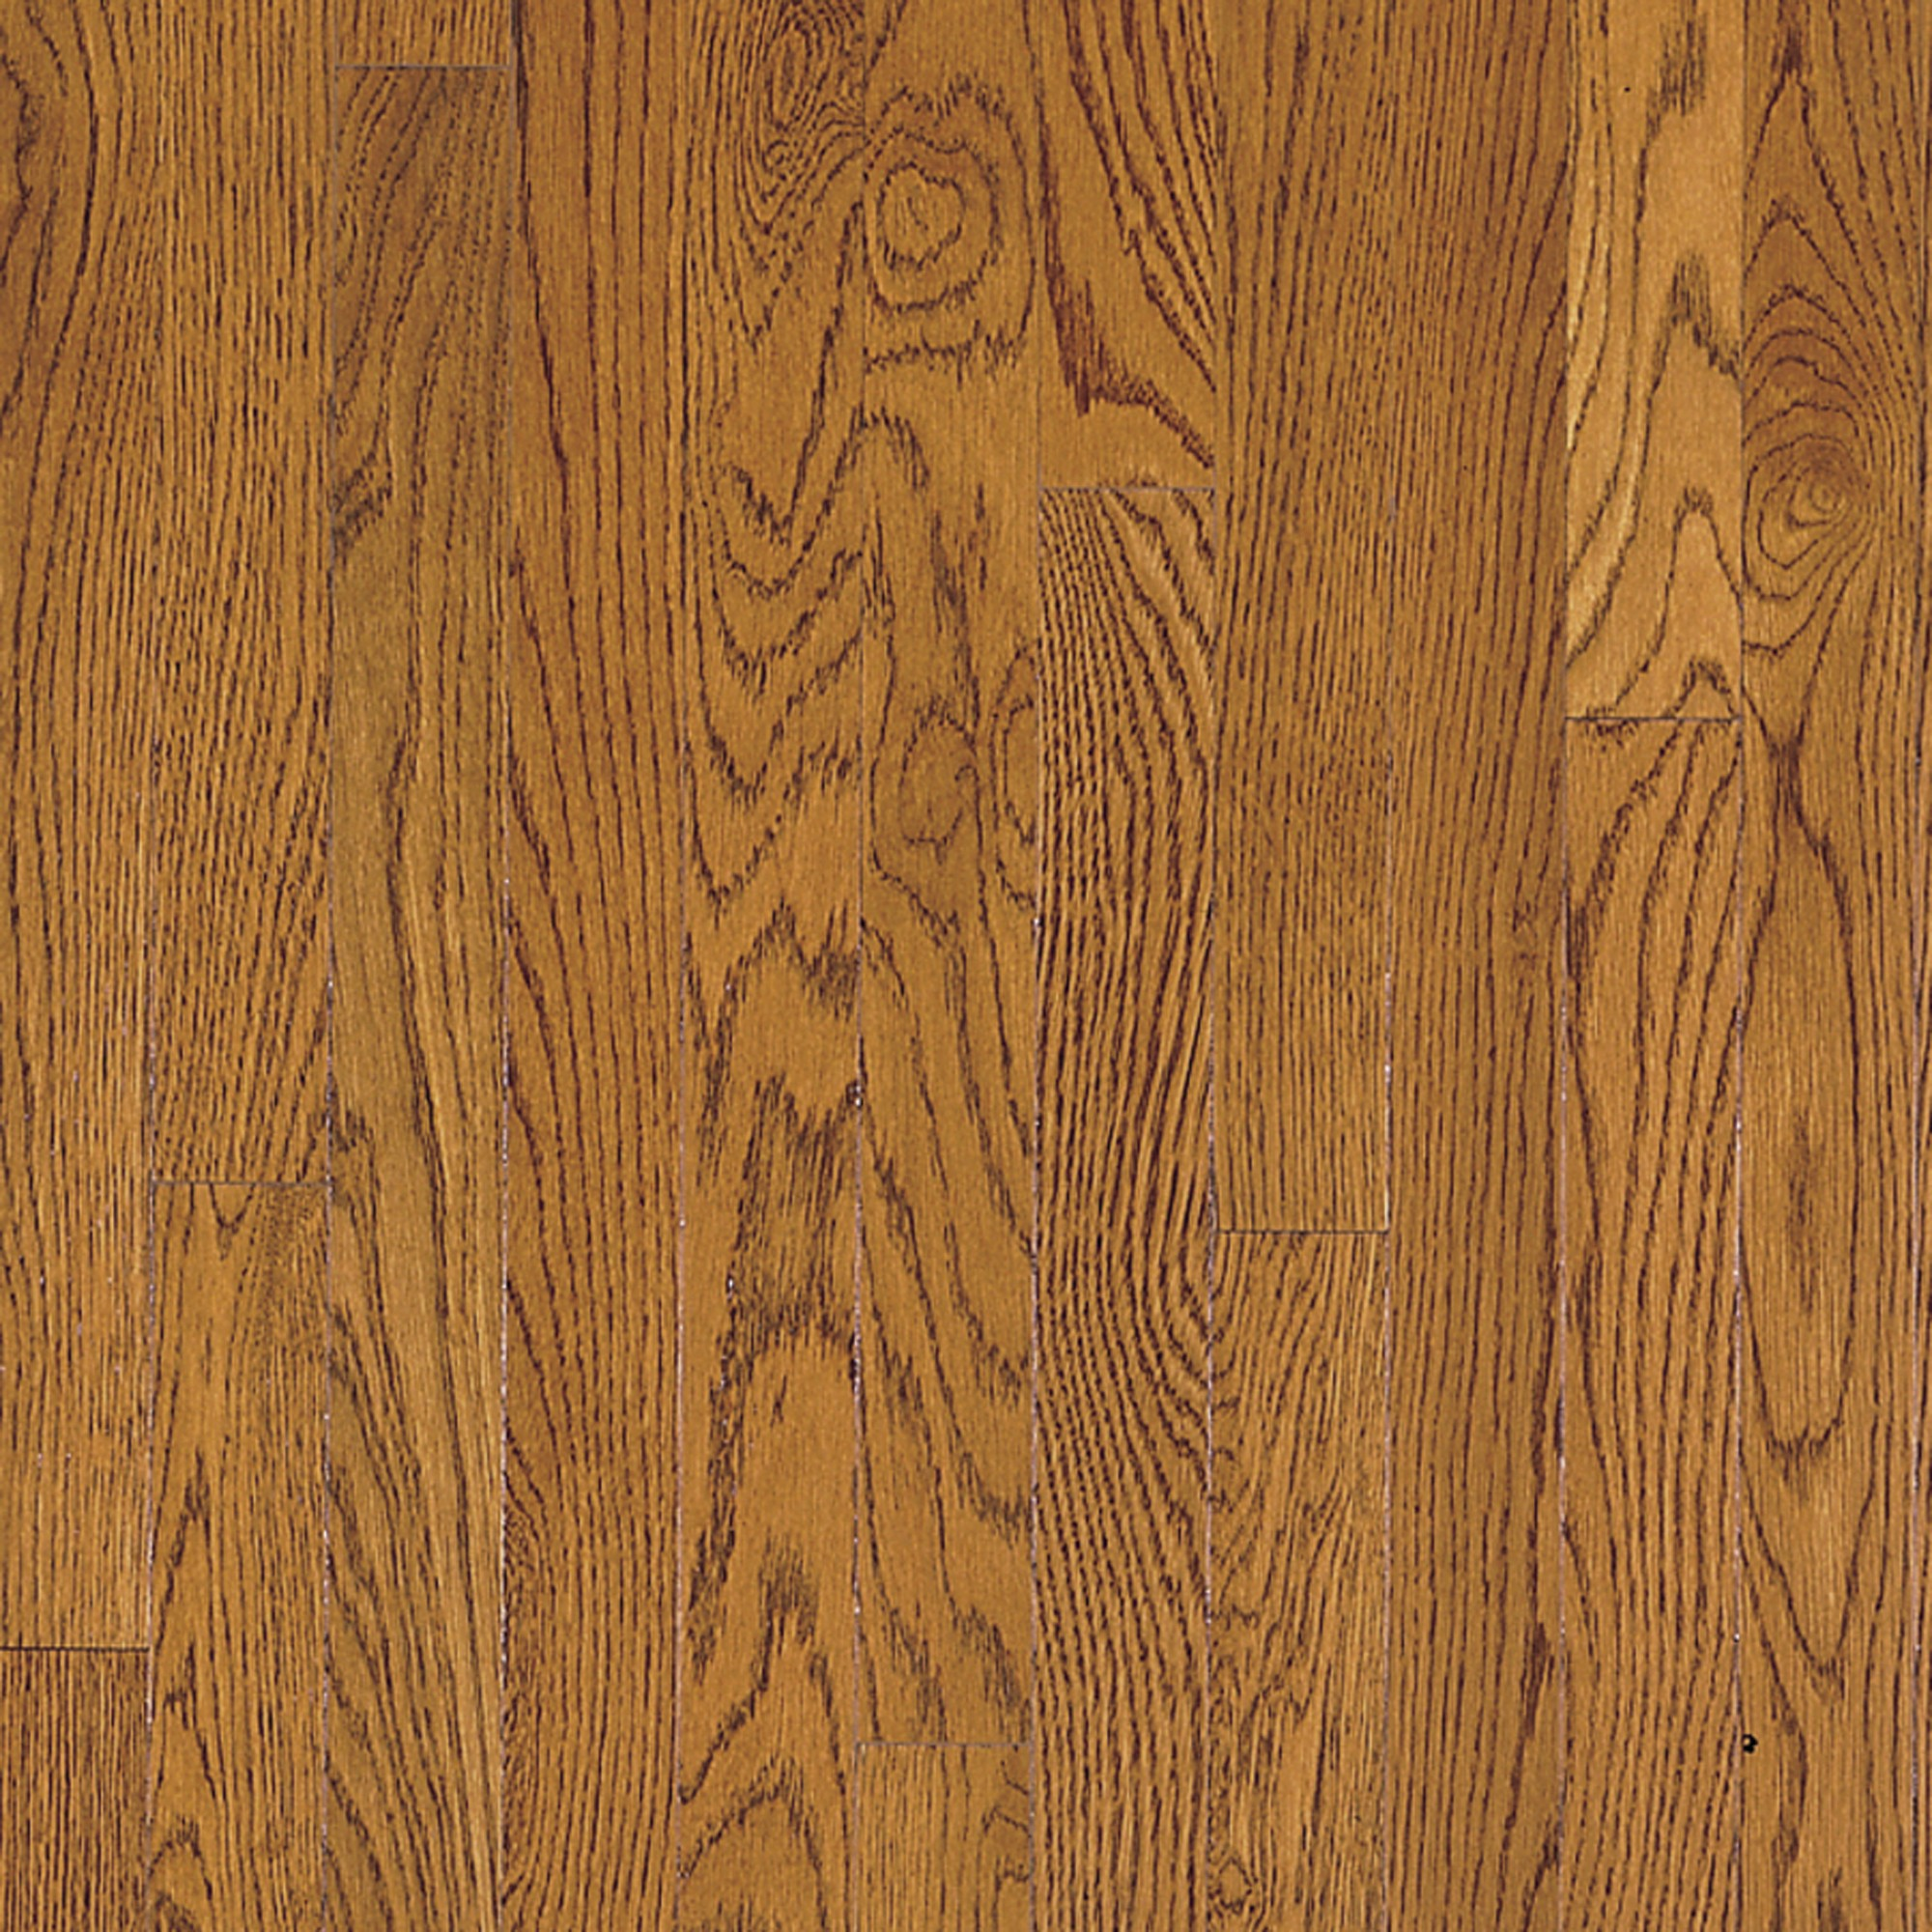 Smooth Red Oak Cambridge Vintage Hardwood Flooring